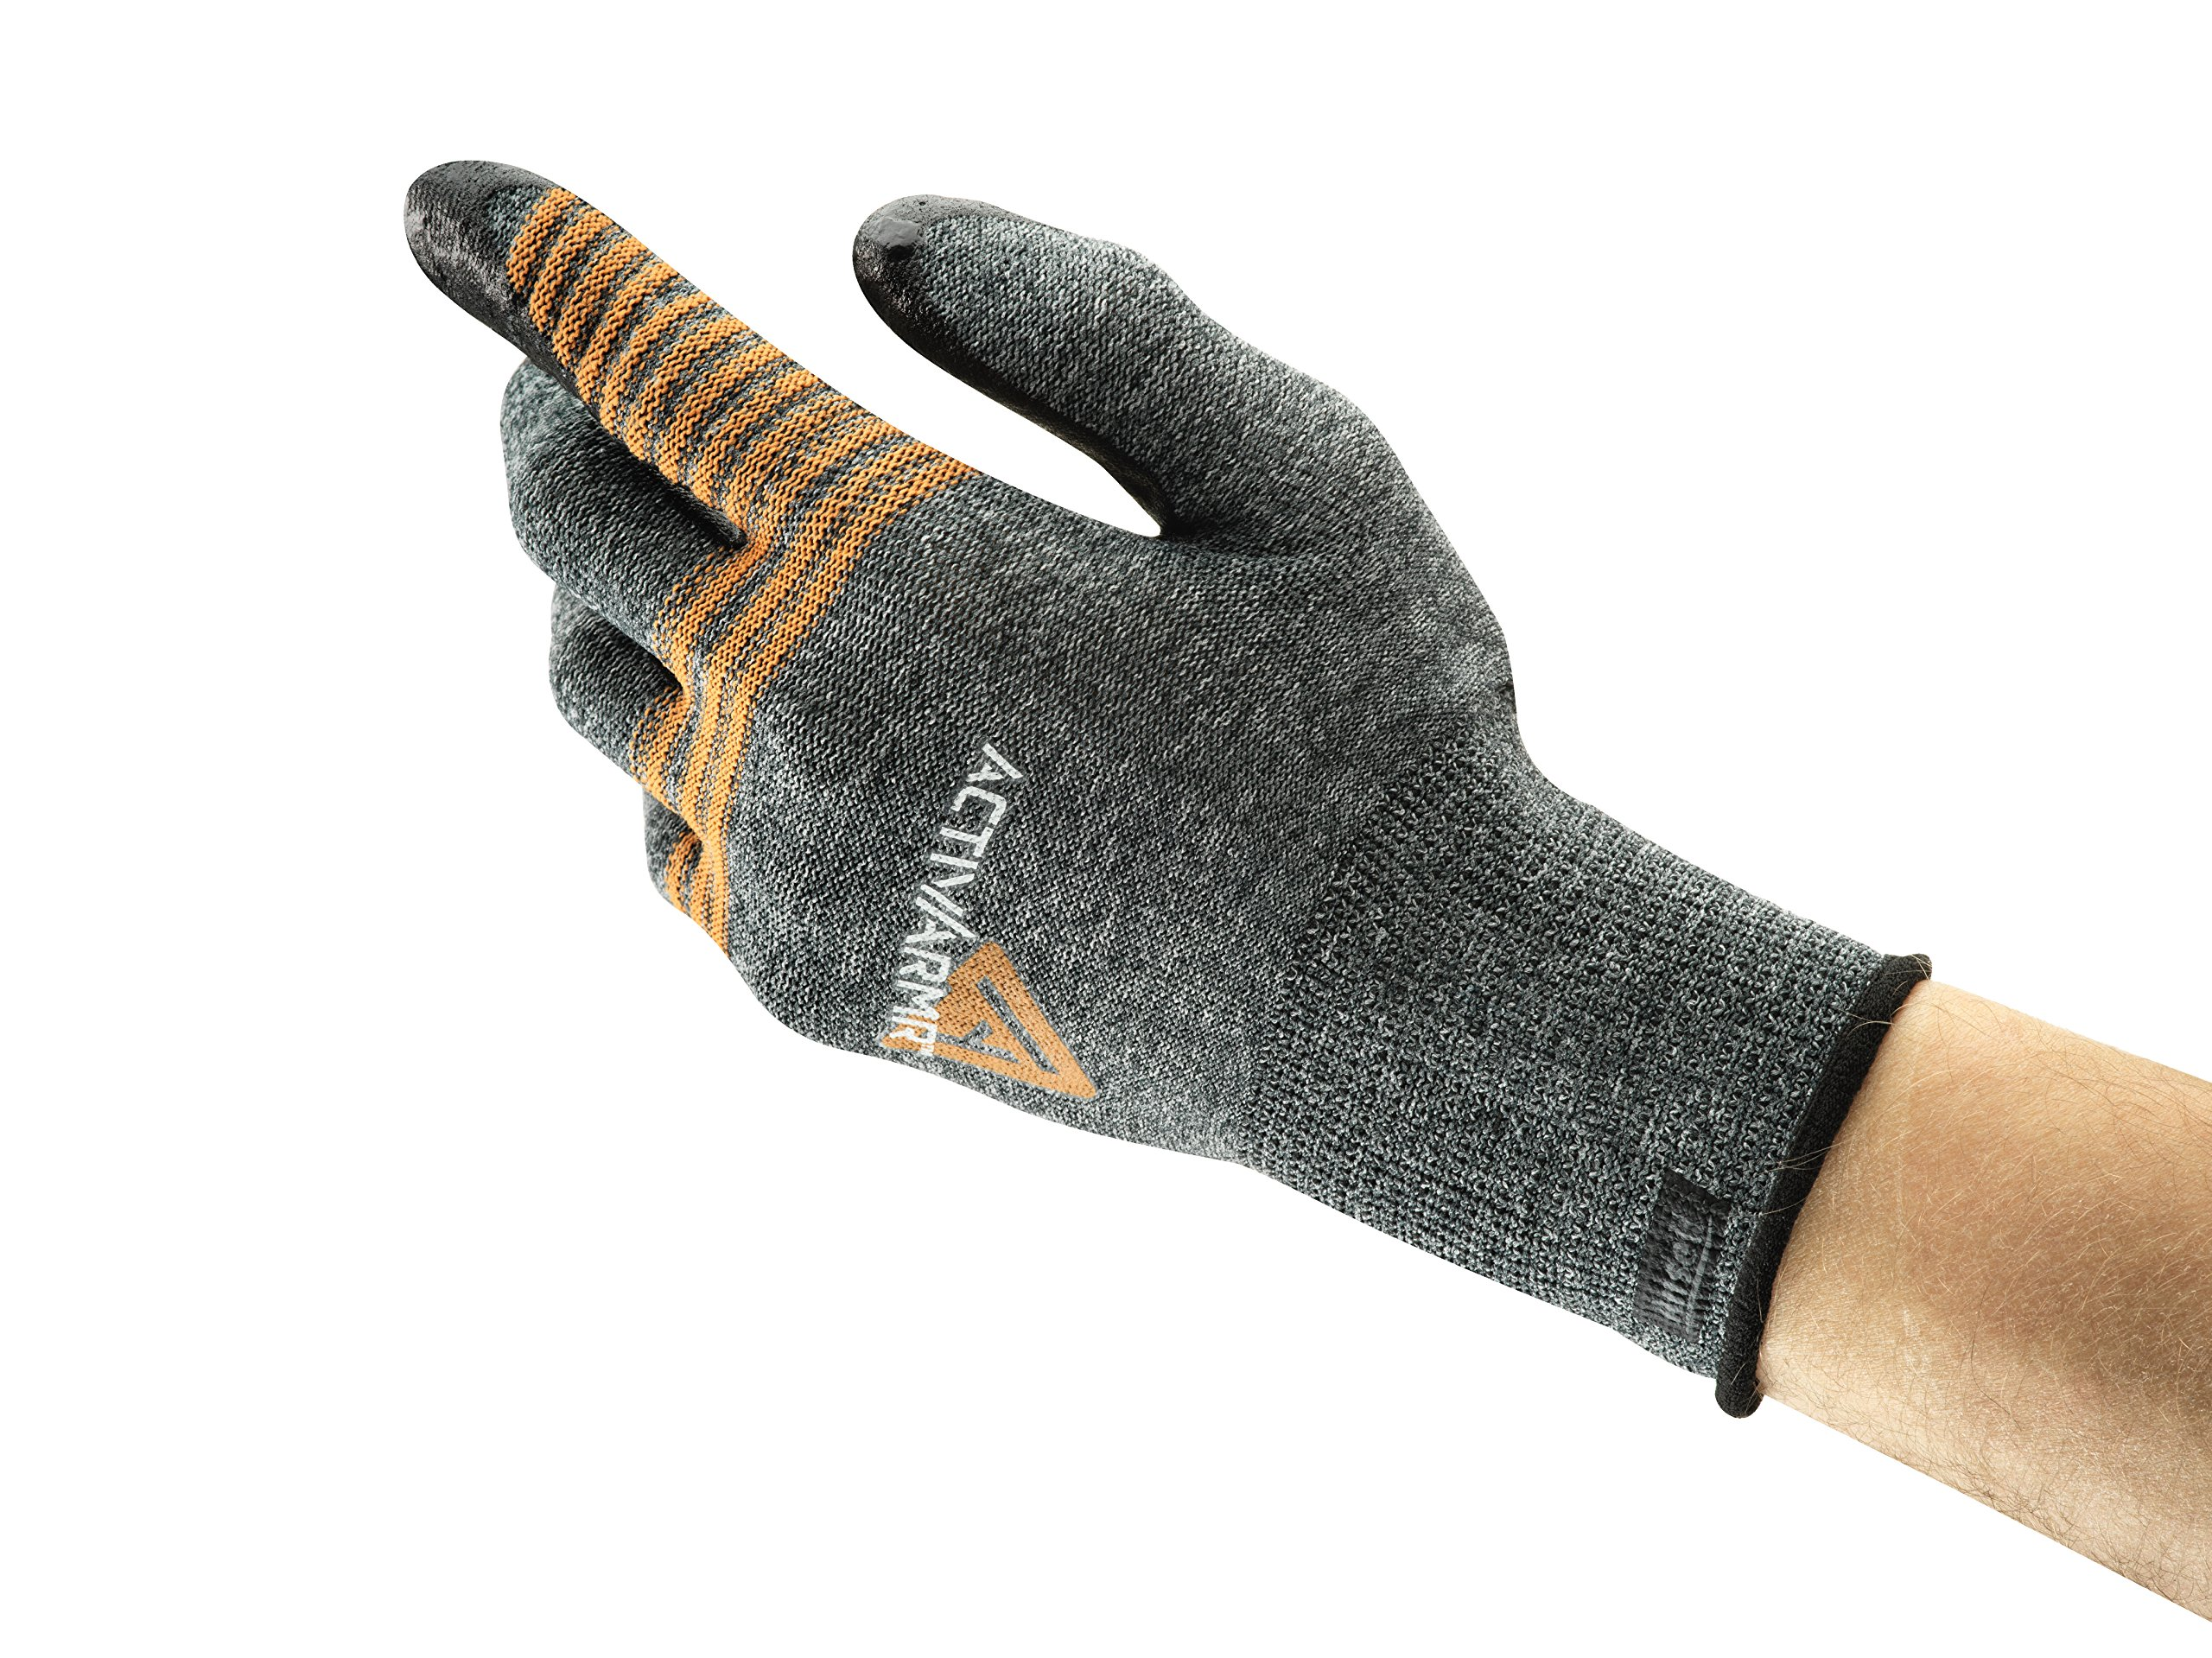 Ansell ActivArmr 97-007 Multipurpose Light Duty Gloves, Medium (1 Pair) by Ansell